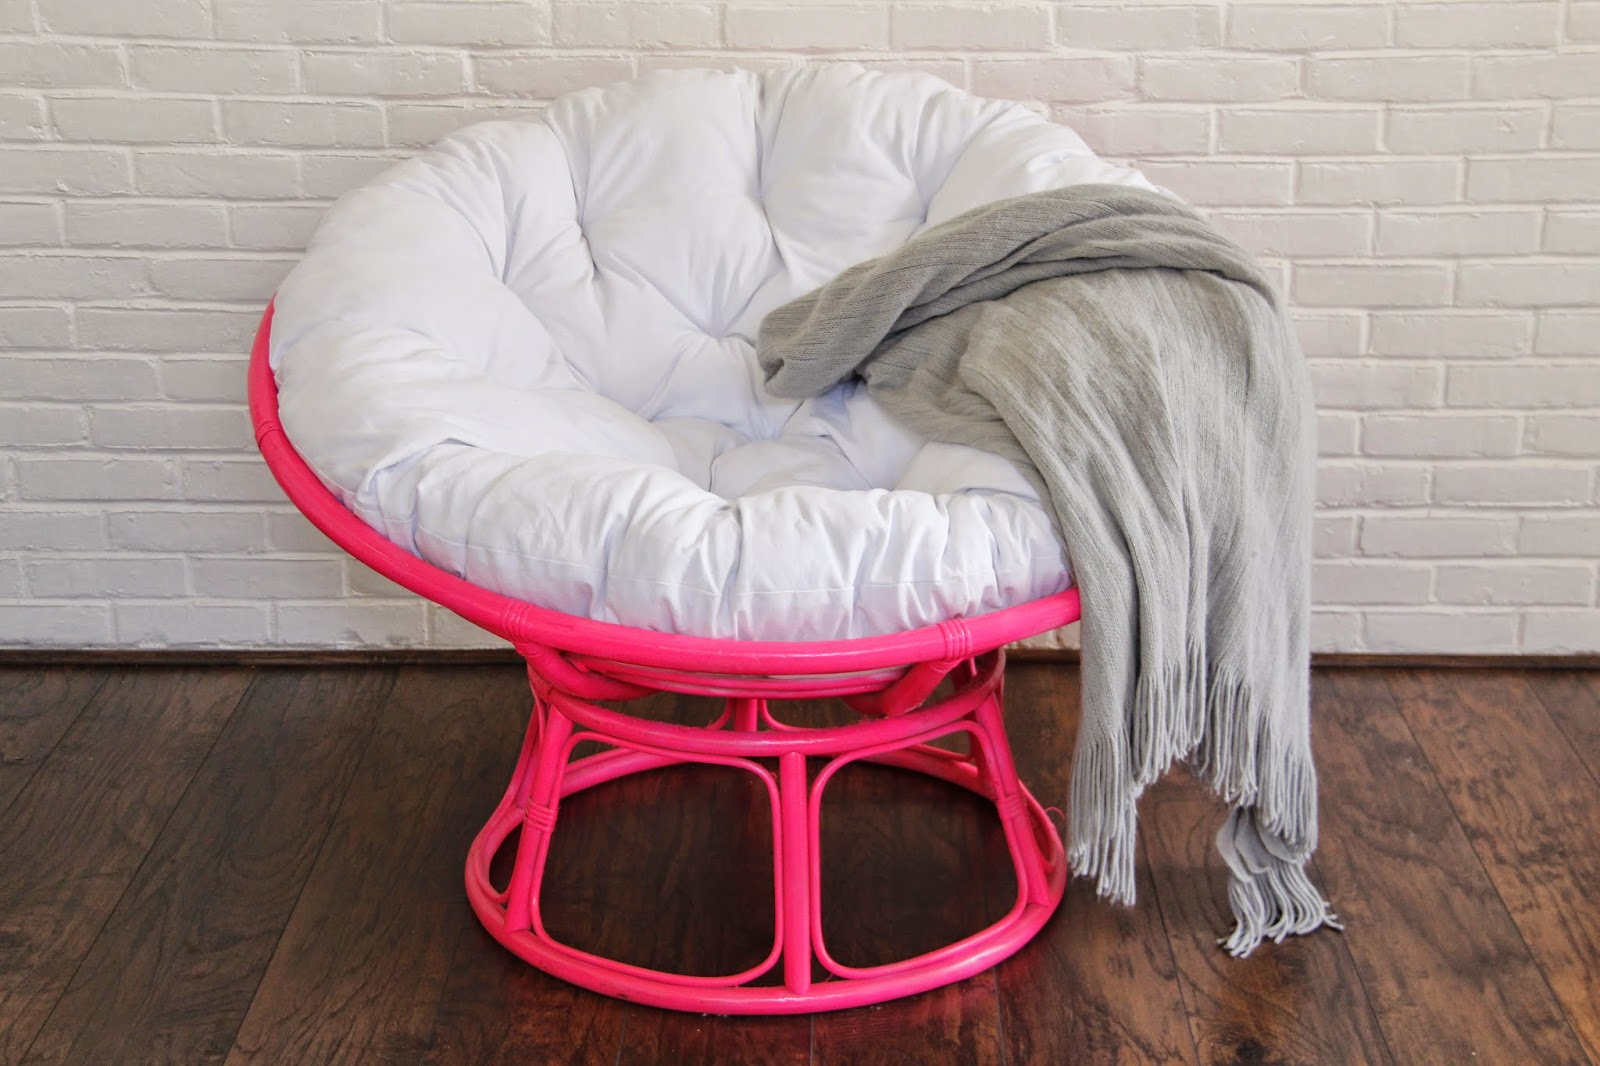 Papasan Cushion | Papasan Swivel Chair Cushion | Popason Chair